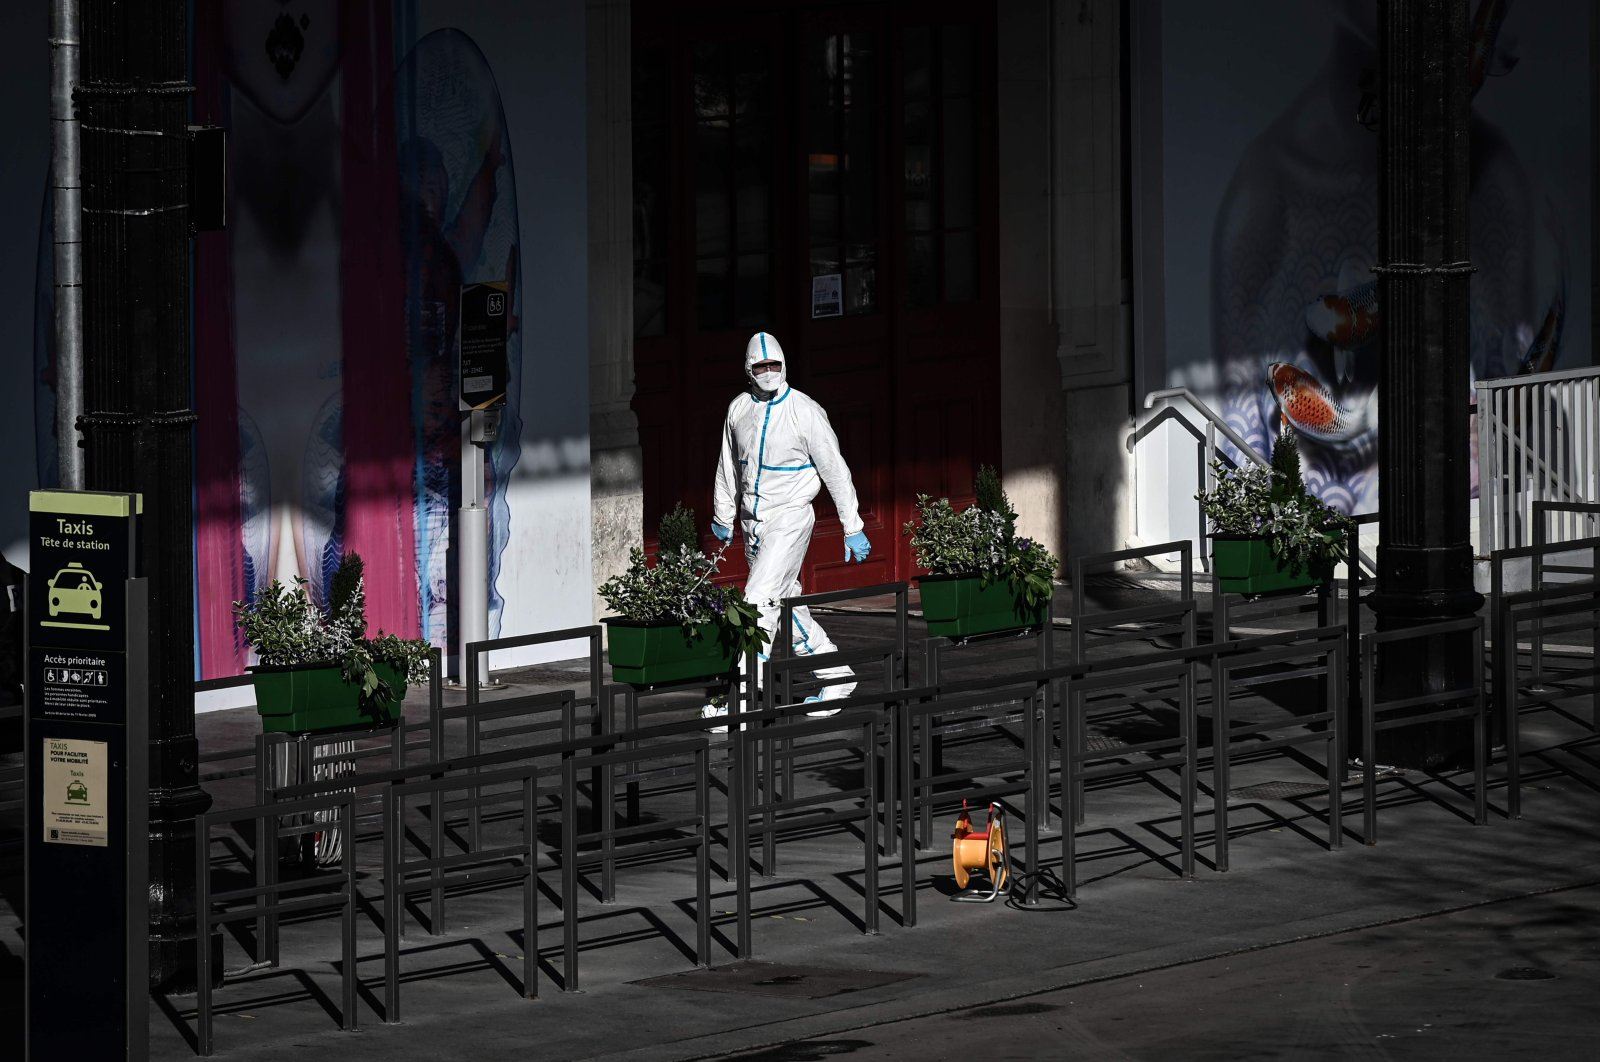 A medical personnel wearing protective gear walks outside the Gare d'Austerlitz rail station in Paris on Sunday, April 5, 2020, during an evacuation operation of patients infected with COVID-19 onboard a TGV highspeed train, on the 20th day of a lockdown in France aimed at curbing the spread of COVID-19 (novel coronavirus). (AFP Photo)